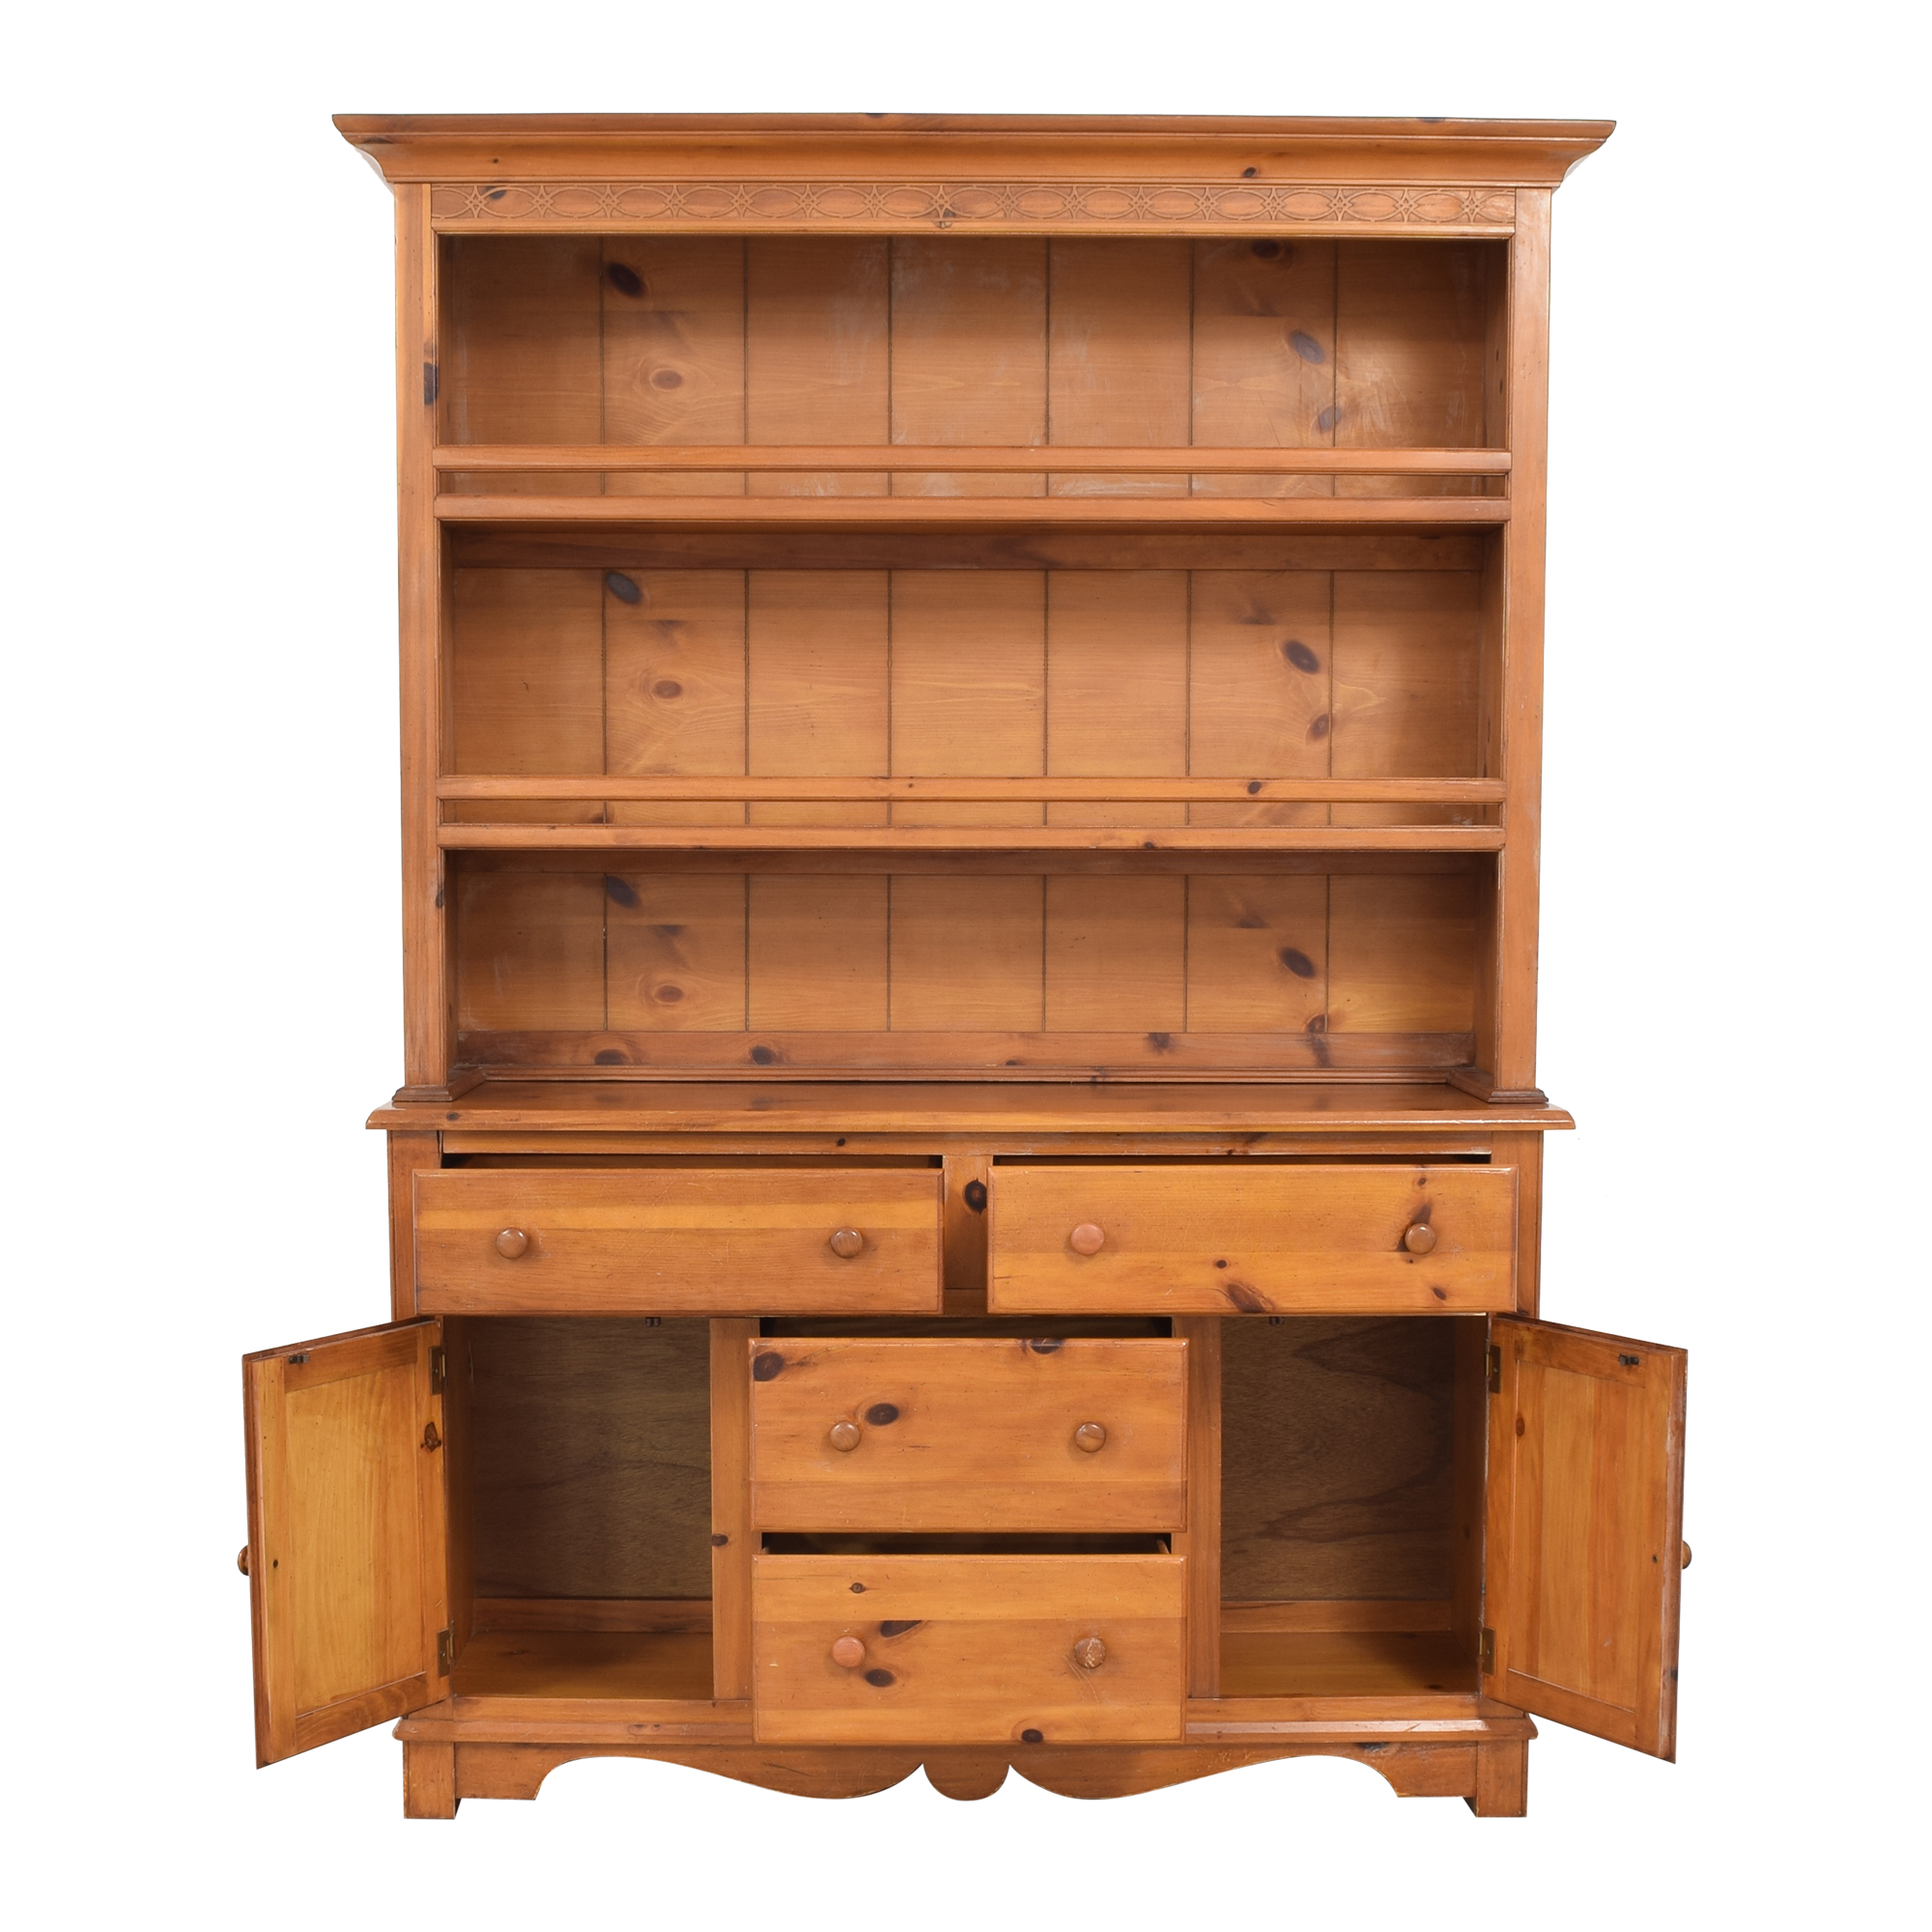 The Guild Hall Cabinet with Hutch nyc